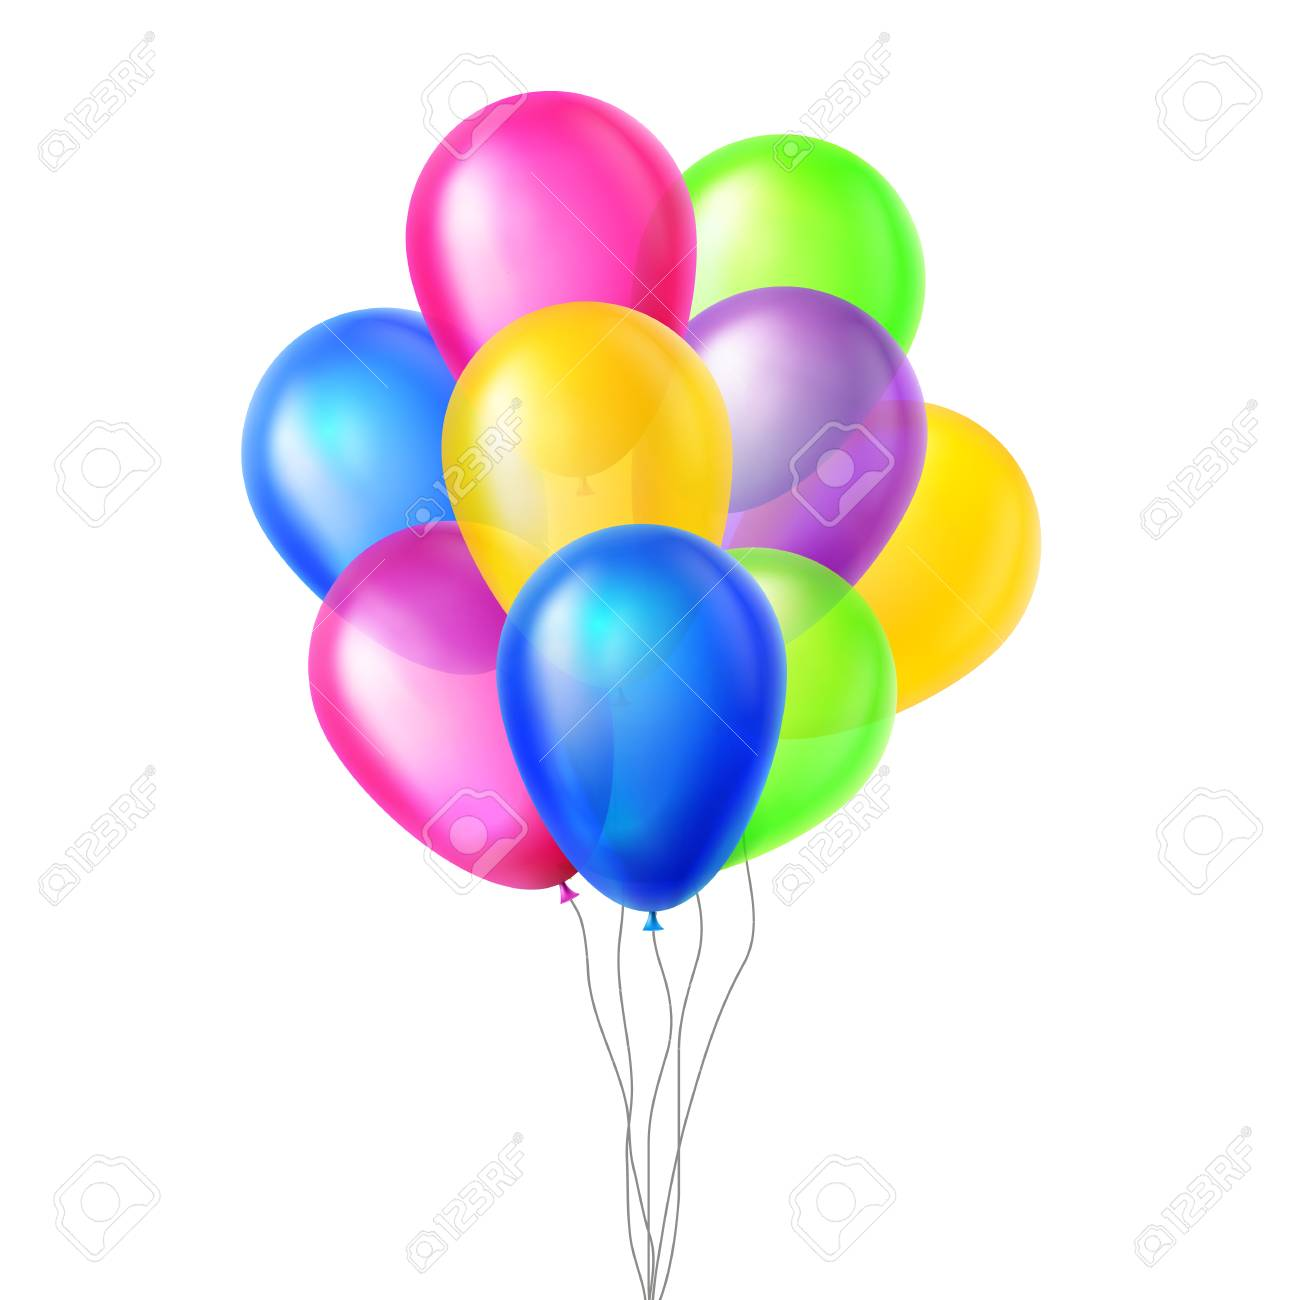 Balloons Vector. In Air. Big Surprise. Group Bunch. Flying. Birthday, Holiday Event Elements Decoration Illustration - 124711382